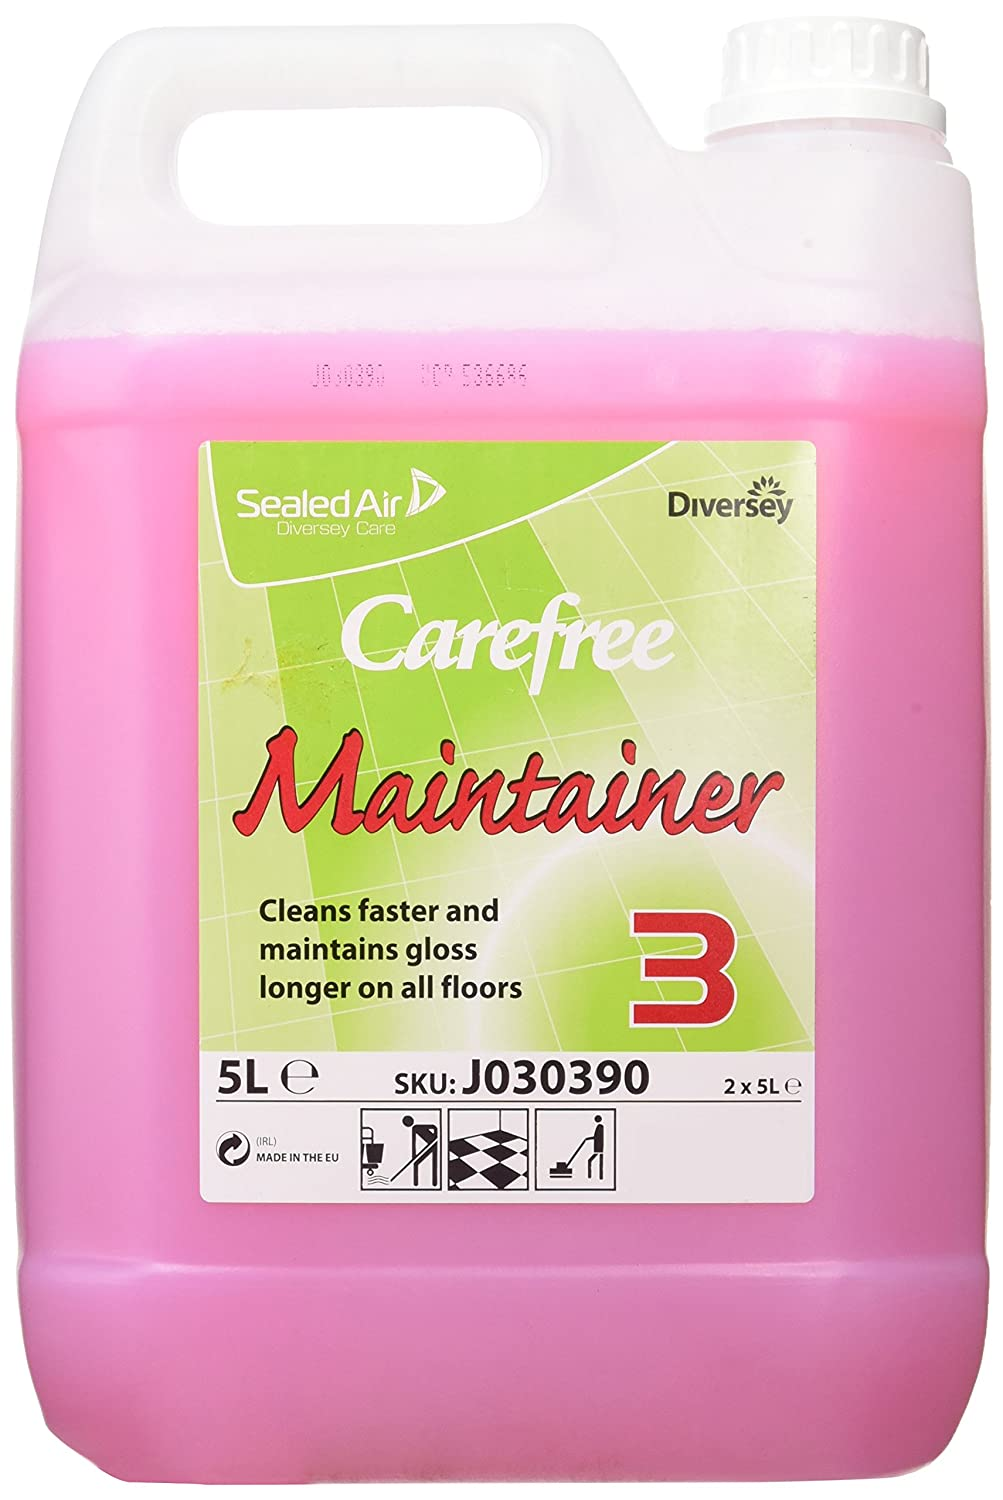 Diversey Carefree Floor Maintainer, advanced formula, renovates polished floors, 5L (pack of 2) J030390